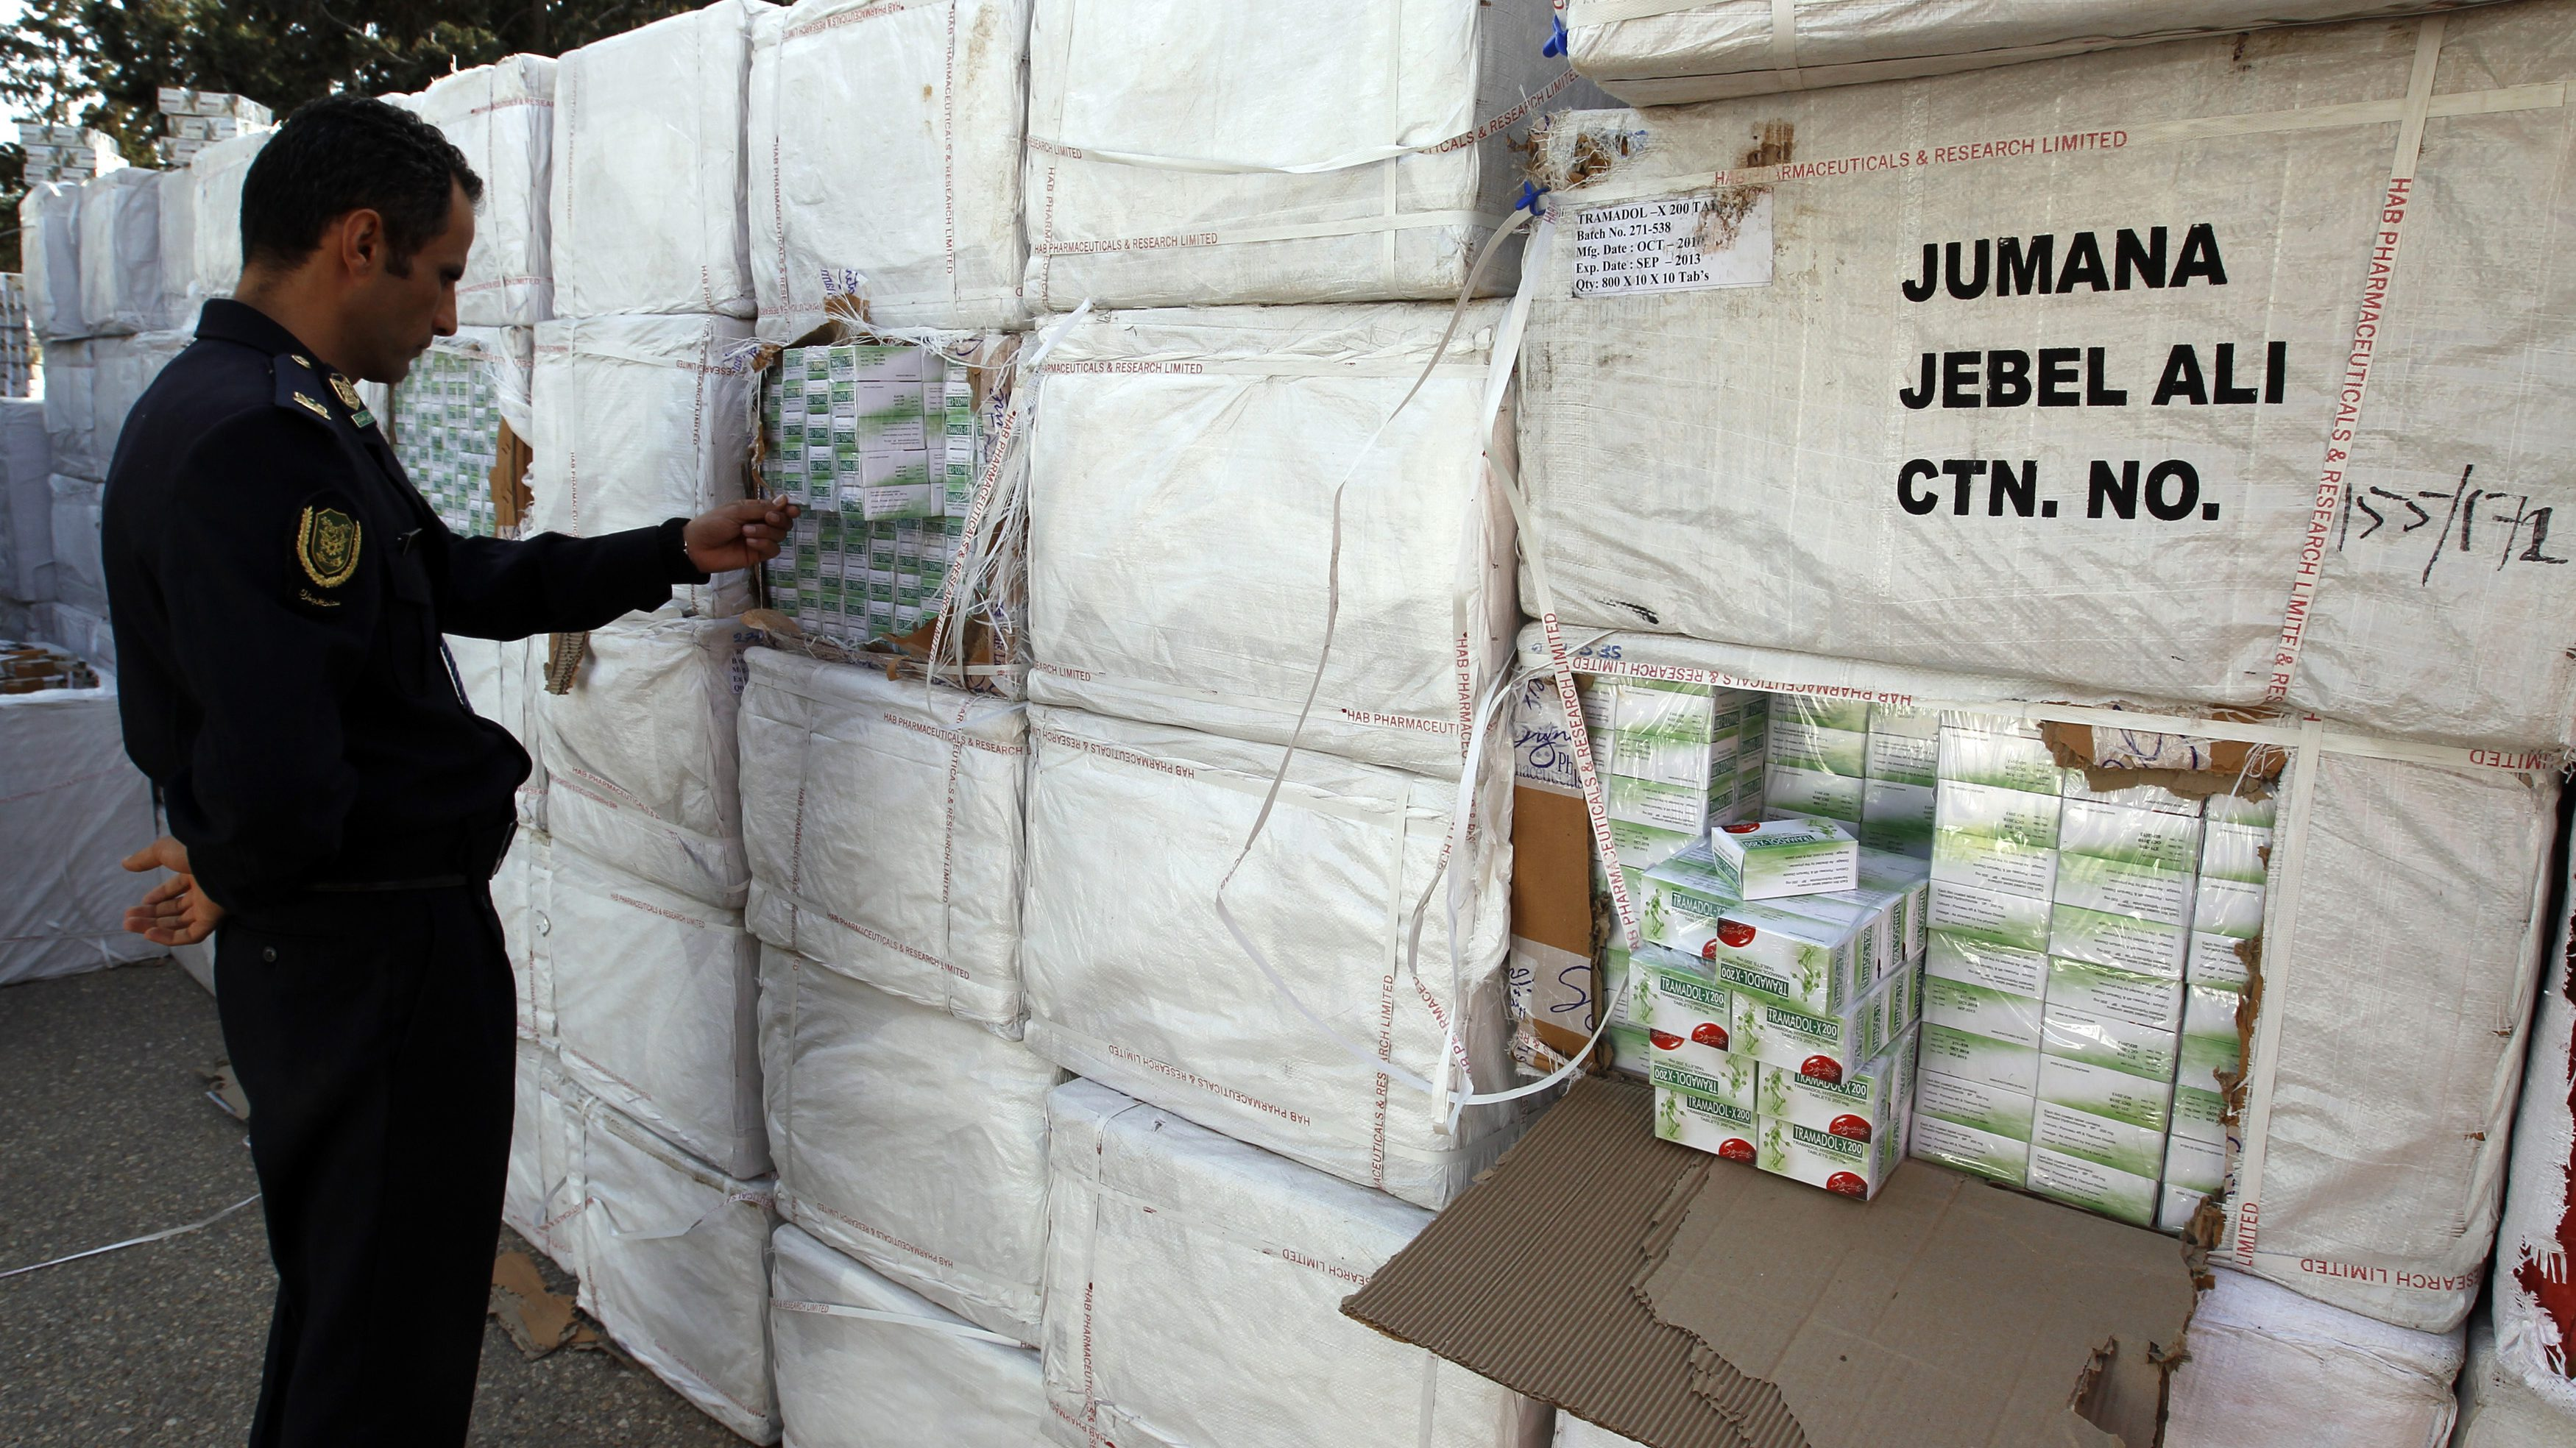 A Libyan police officer views a haul of prescription drug Tramadol seized from a shipping container in Tripoli